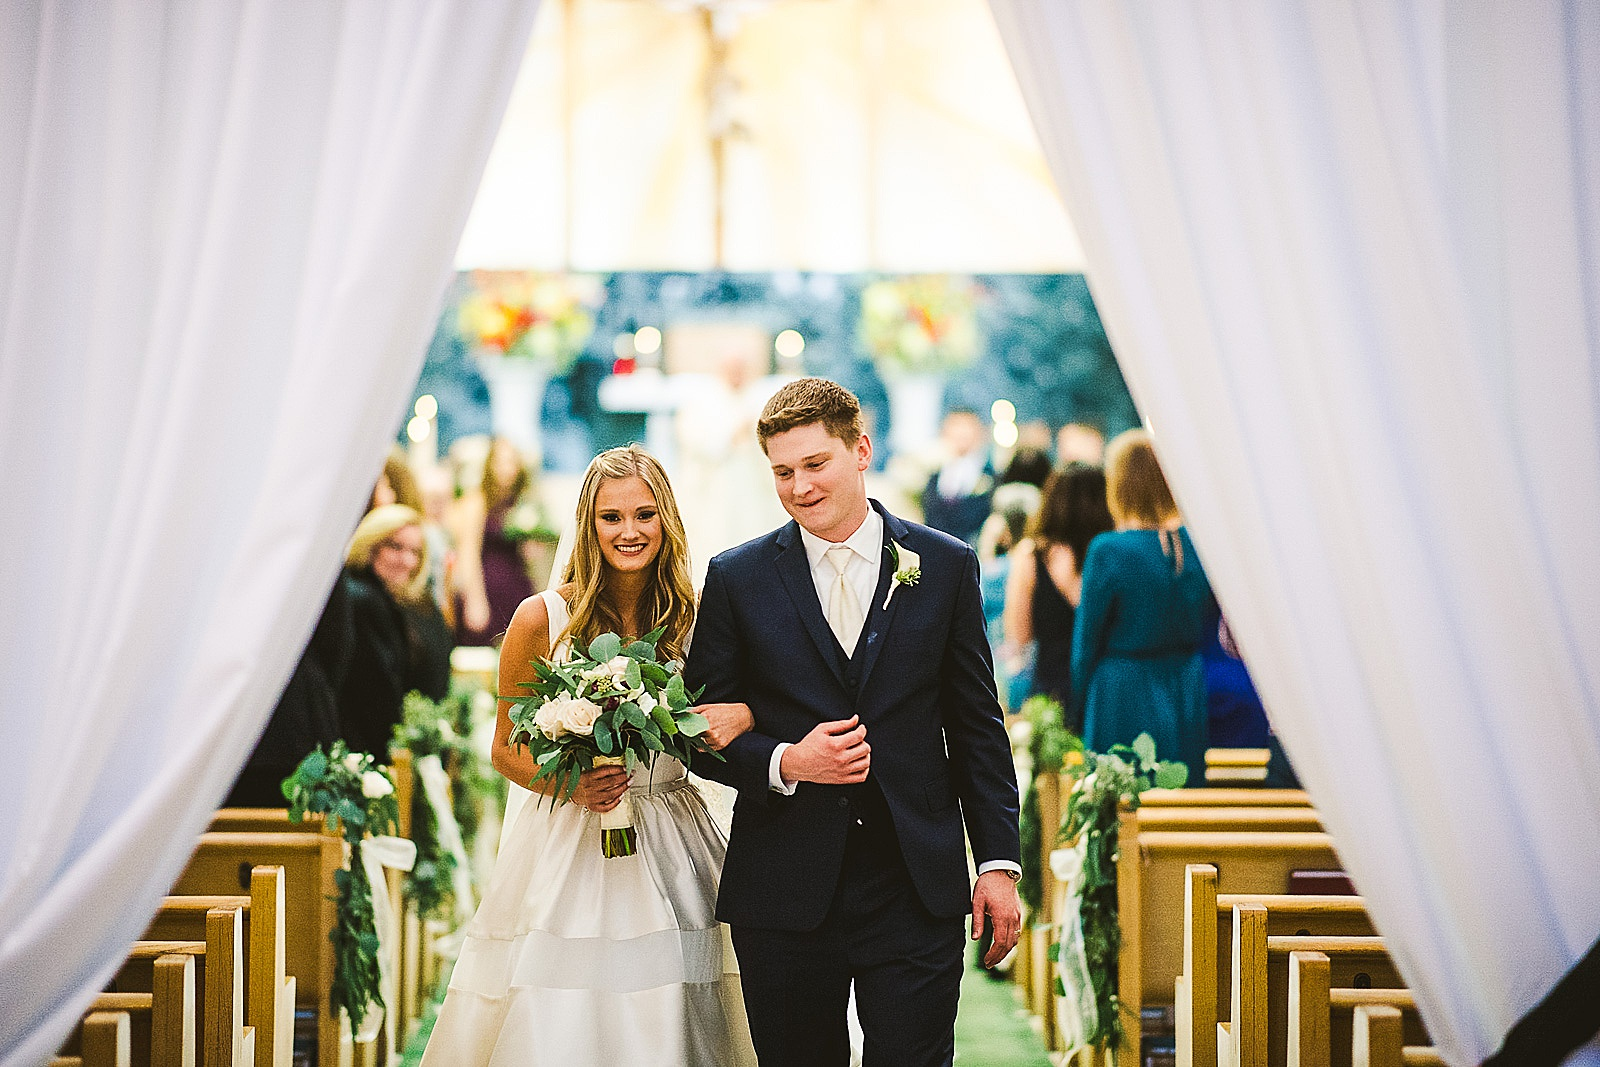 35 married inspiration - The Glen Club Wedding Photos // Katie + Nick